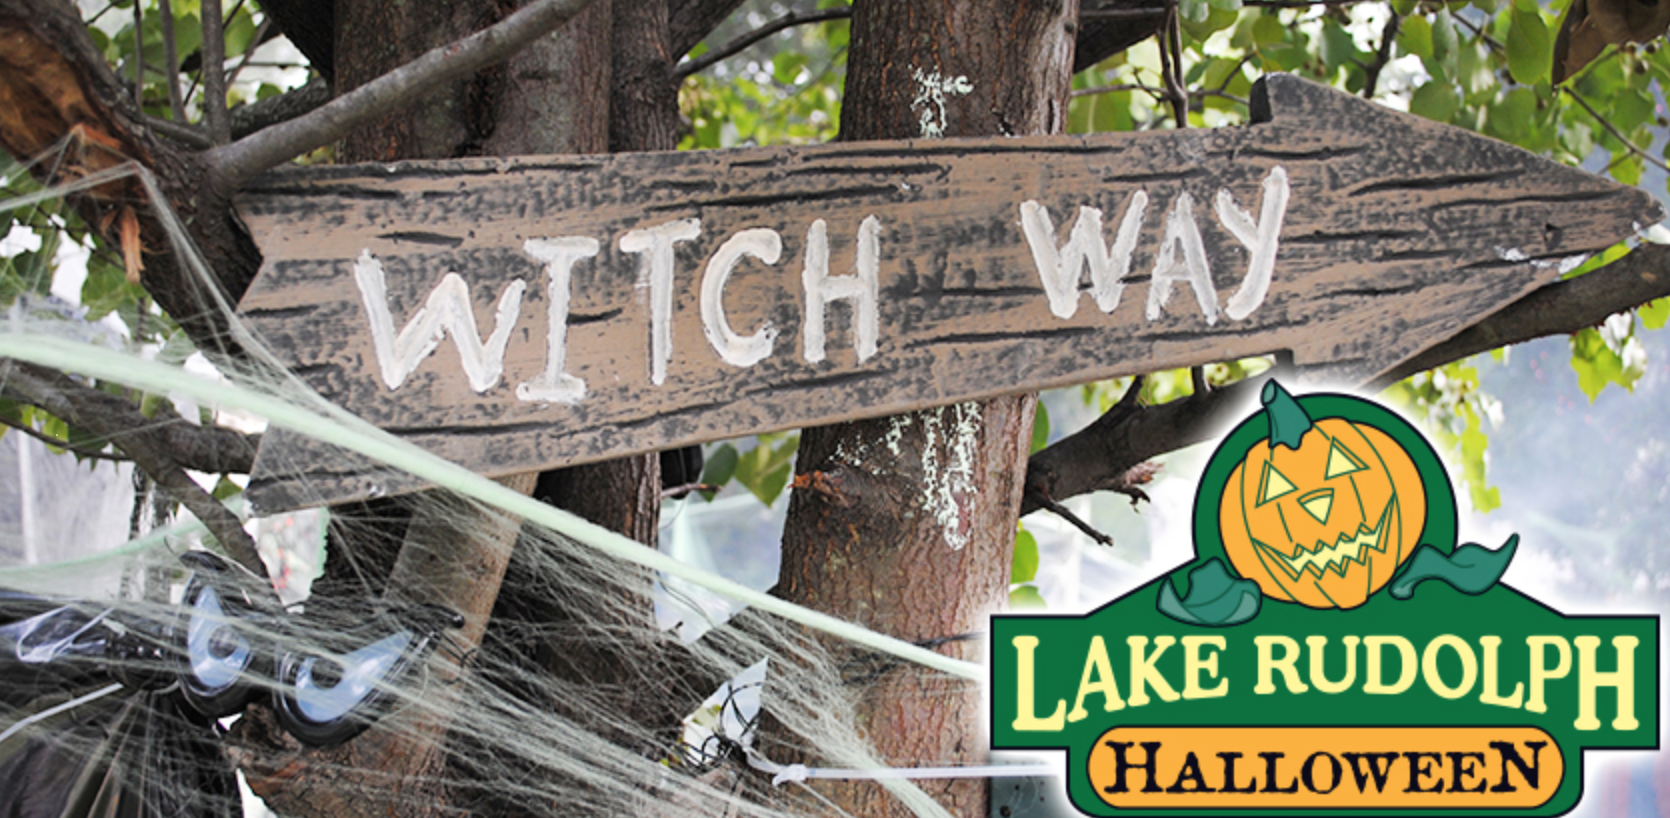 Lake Rudolph Halloween weekends in Santa Claus, Indiana. Witch Way sign.